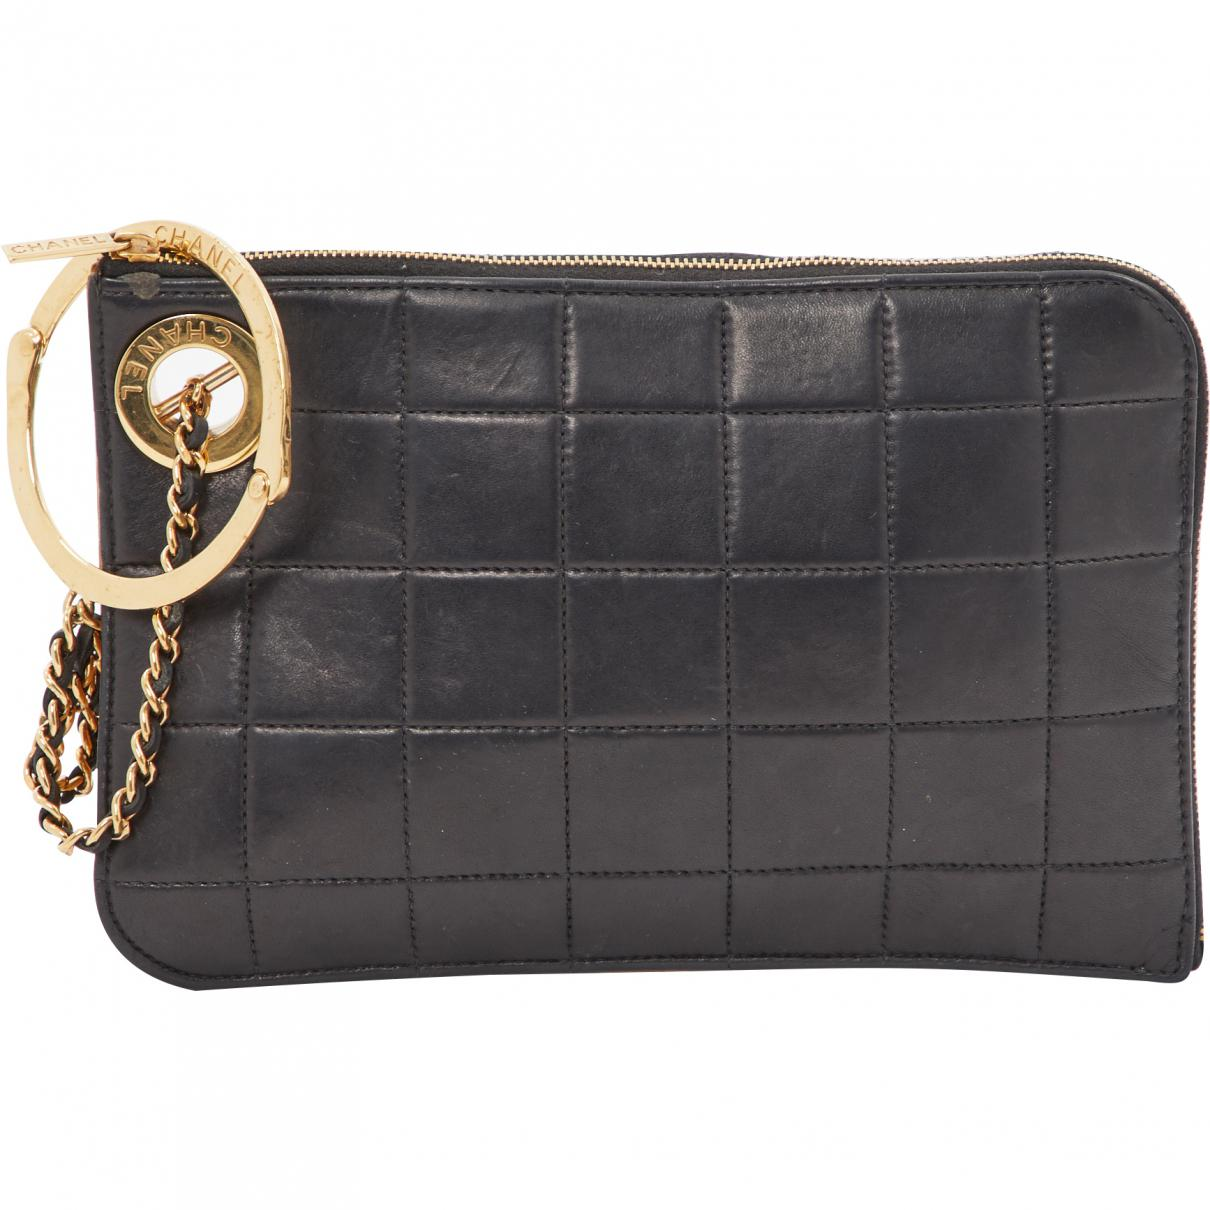 Chanel Pre-owned - Cloth clutch bag TvJjp3